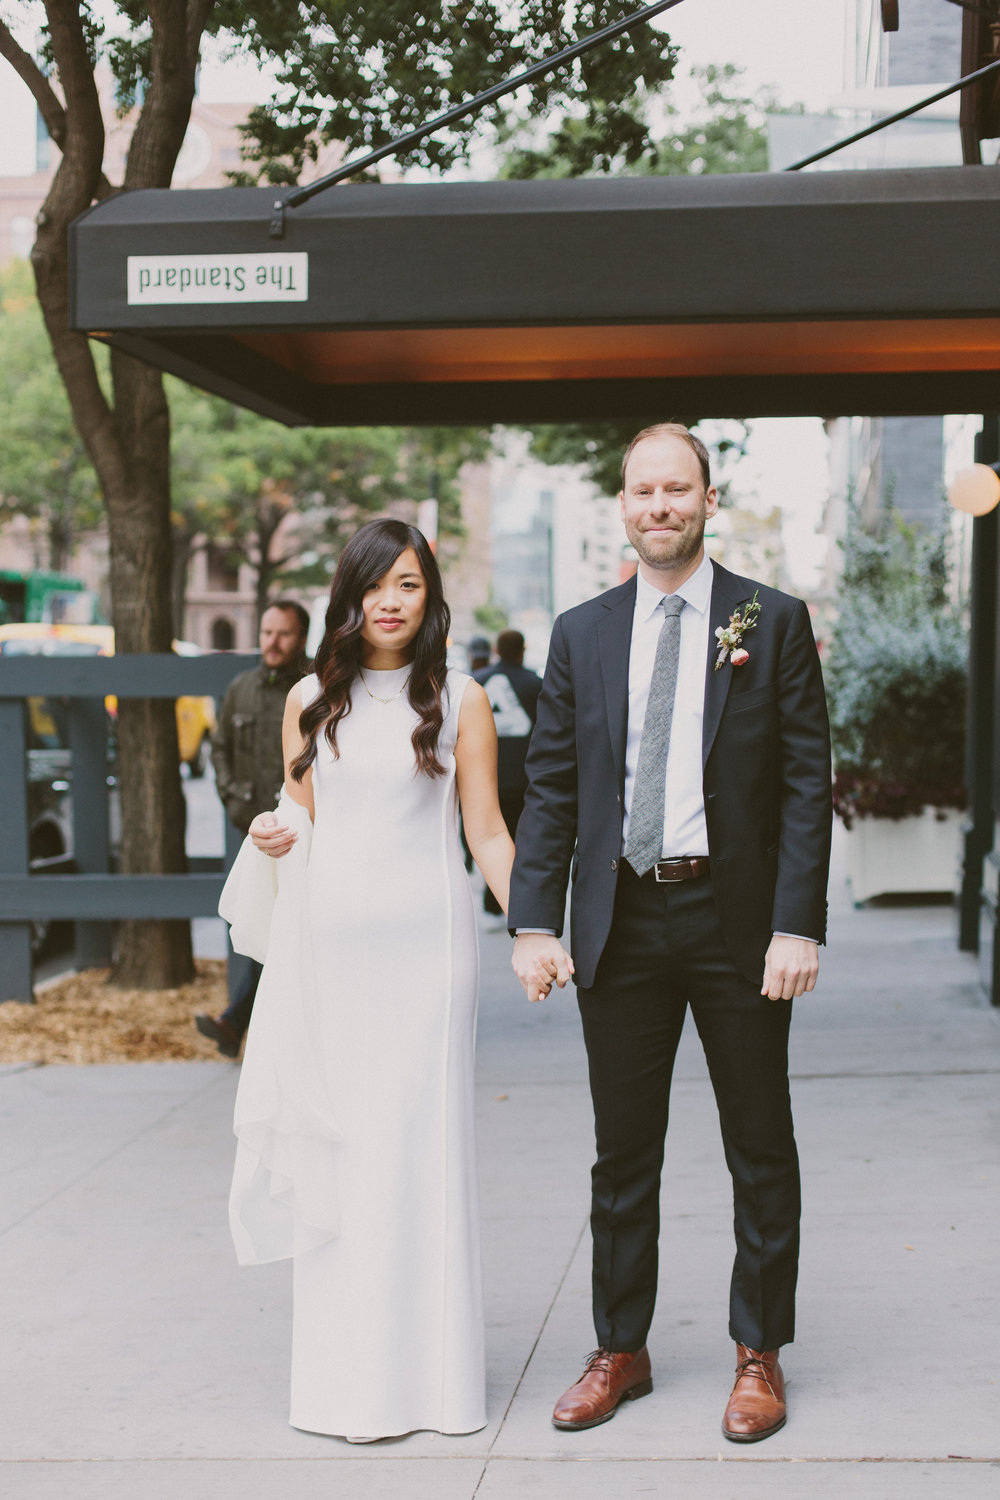 KRISTINA + ROY      TIED THE KNOT: October 17th, 2015         VENUE: Marble Cemetery, New York, NY and Chinatown, NY            OUR FAVORITE PART: Unconventional Ceremony Setting - You guys absolutely rocked it! We couldn't have been happier. Thanks so much for making it all feel like a walk in the park.Image: City Love Photography